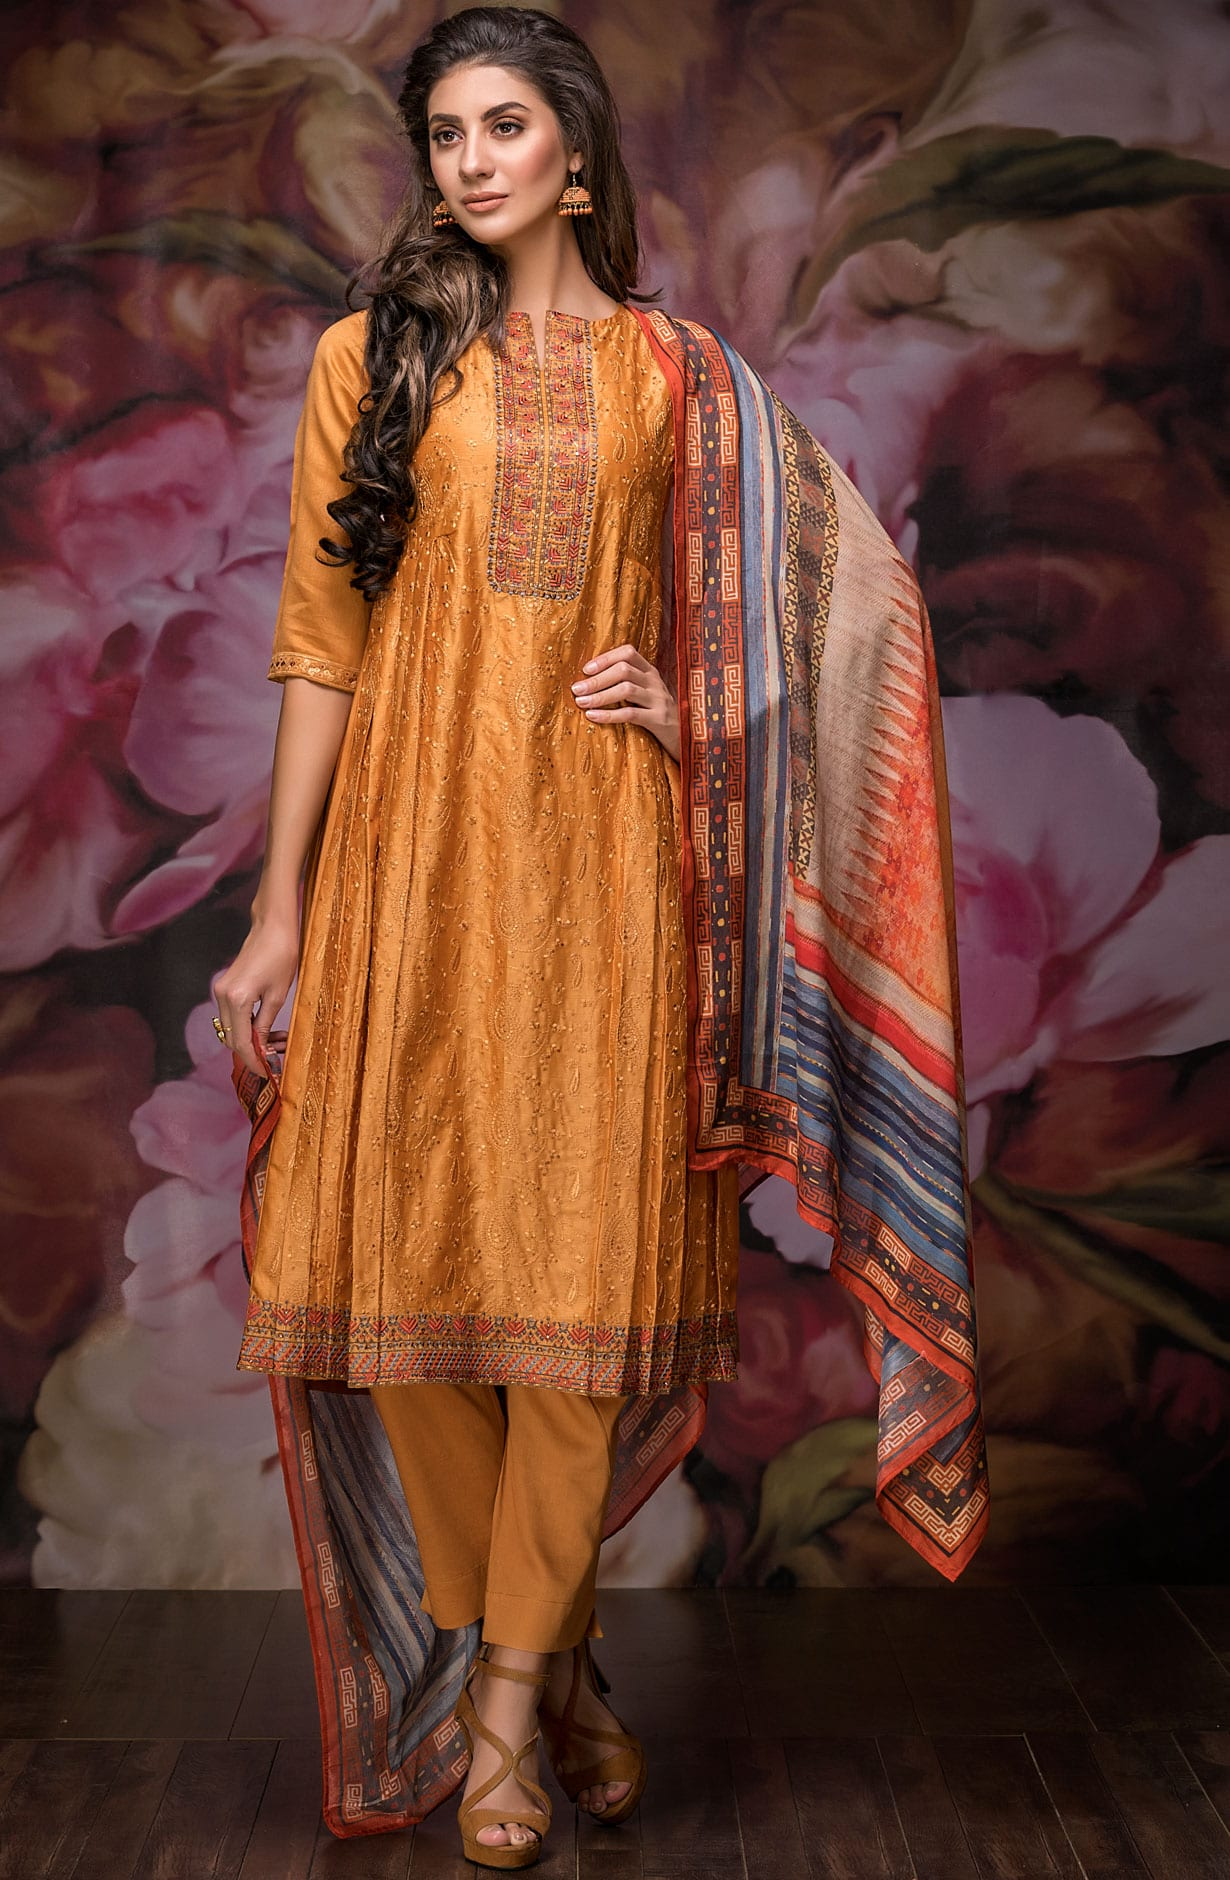 407d3a9f2d Chanderi Cotton Embroidery with Swarovski Work Exclusive Salwar Suit In  Mustard | GUL2532